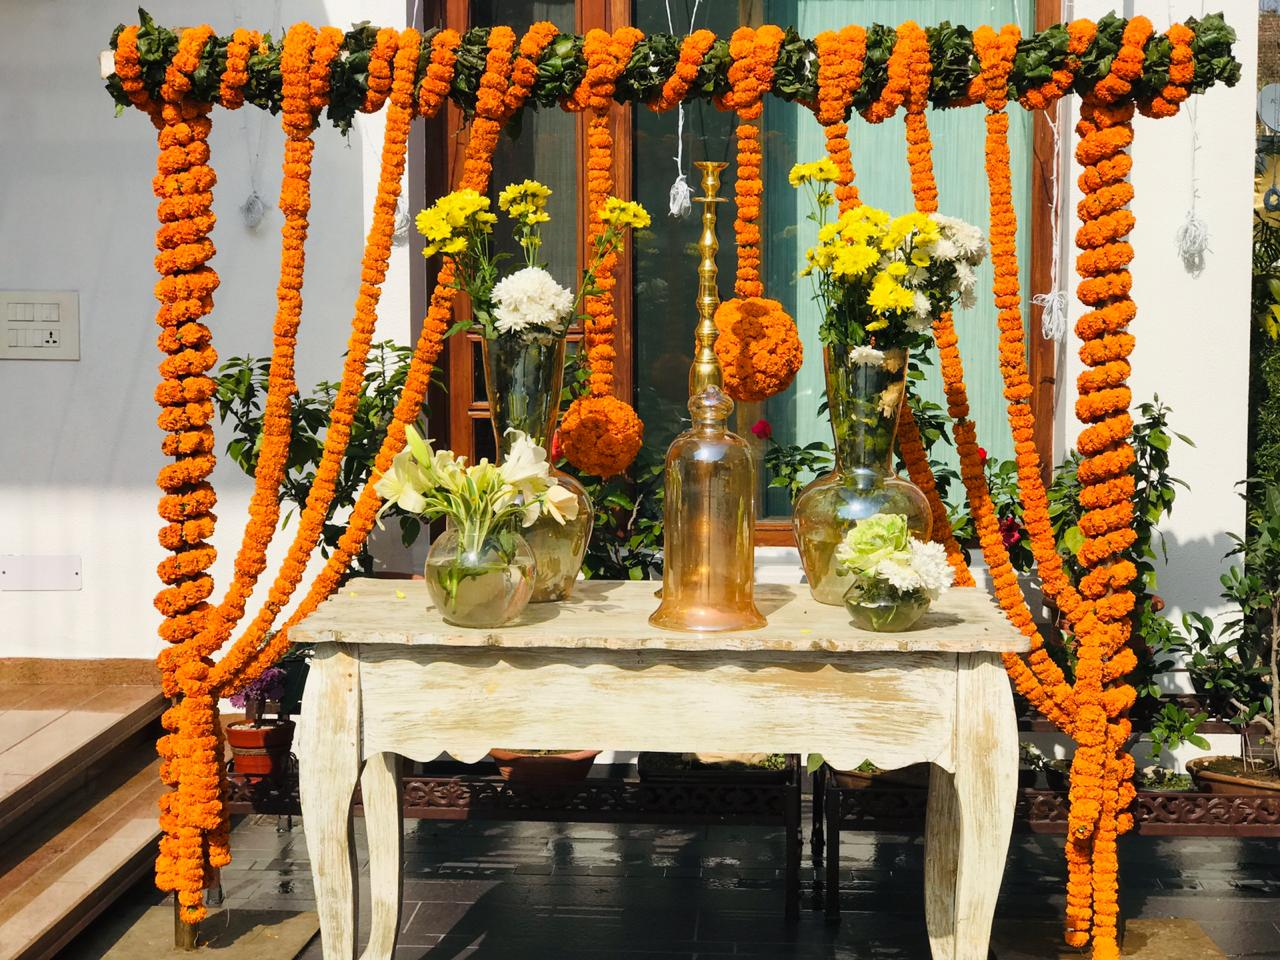 Cost effective service wedding planner and caterers in Mohali | Red Tag Caterers | Cost effective service wedding planner and caterers in Mohali, best service wedding planner and caterers in Mohali, most reliable wedding planner and caterers in Mohali, dynamic service wedding planne - GL64885